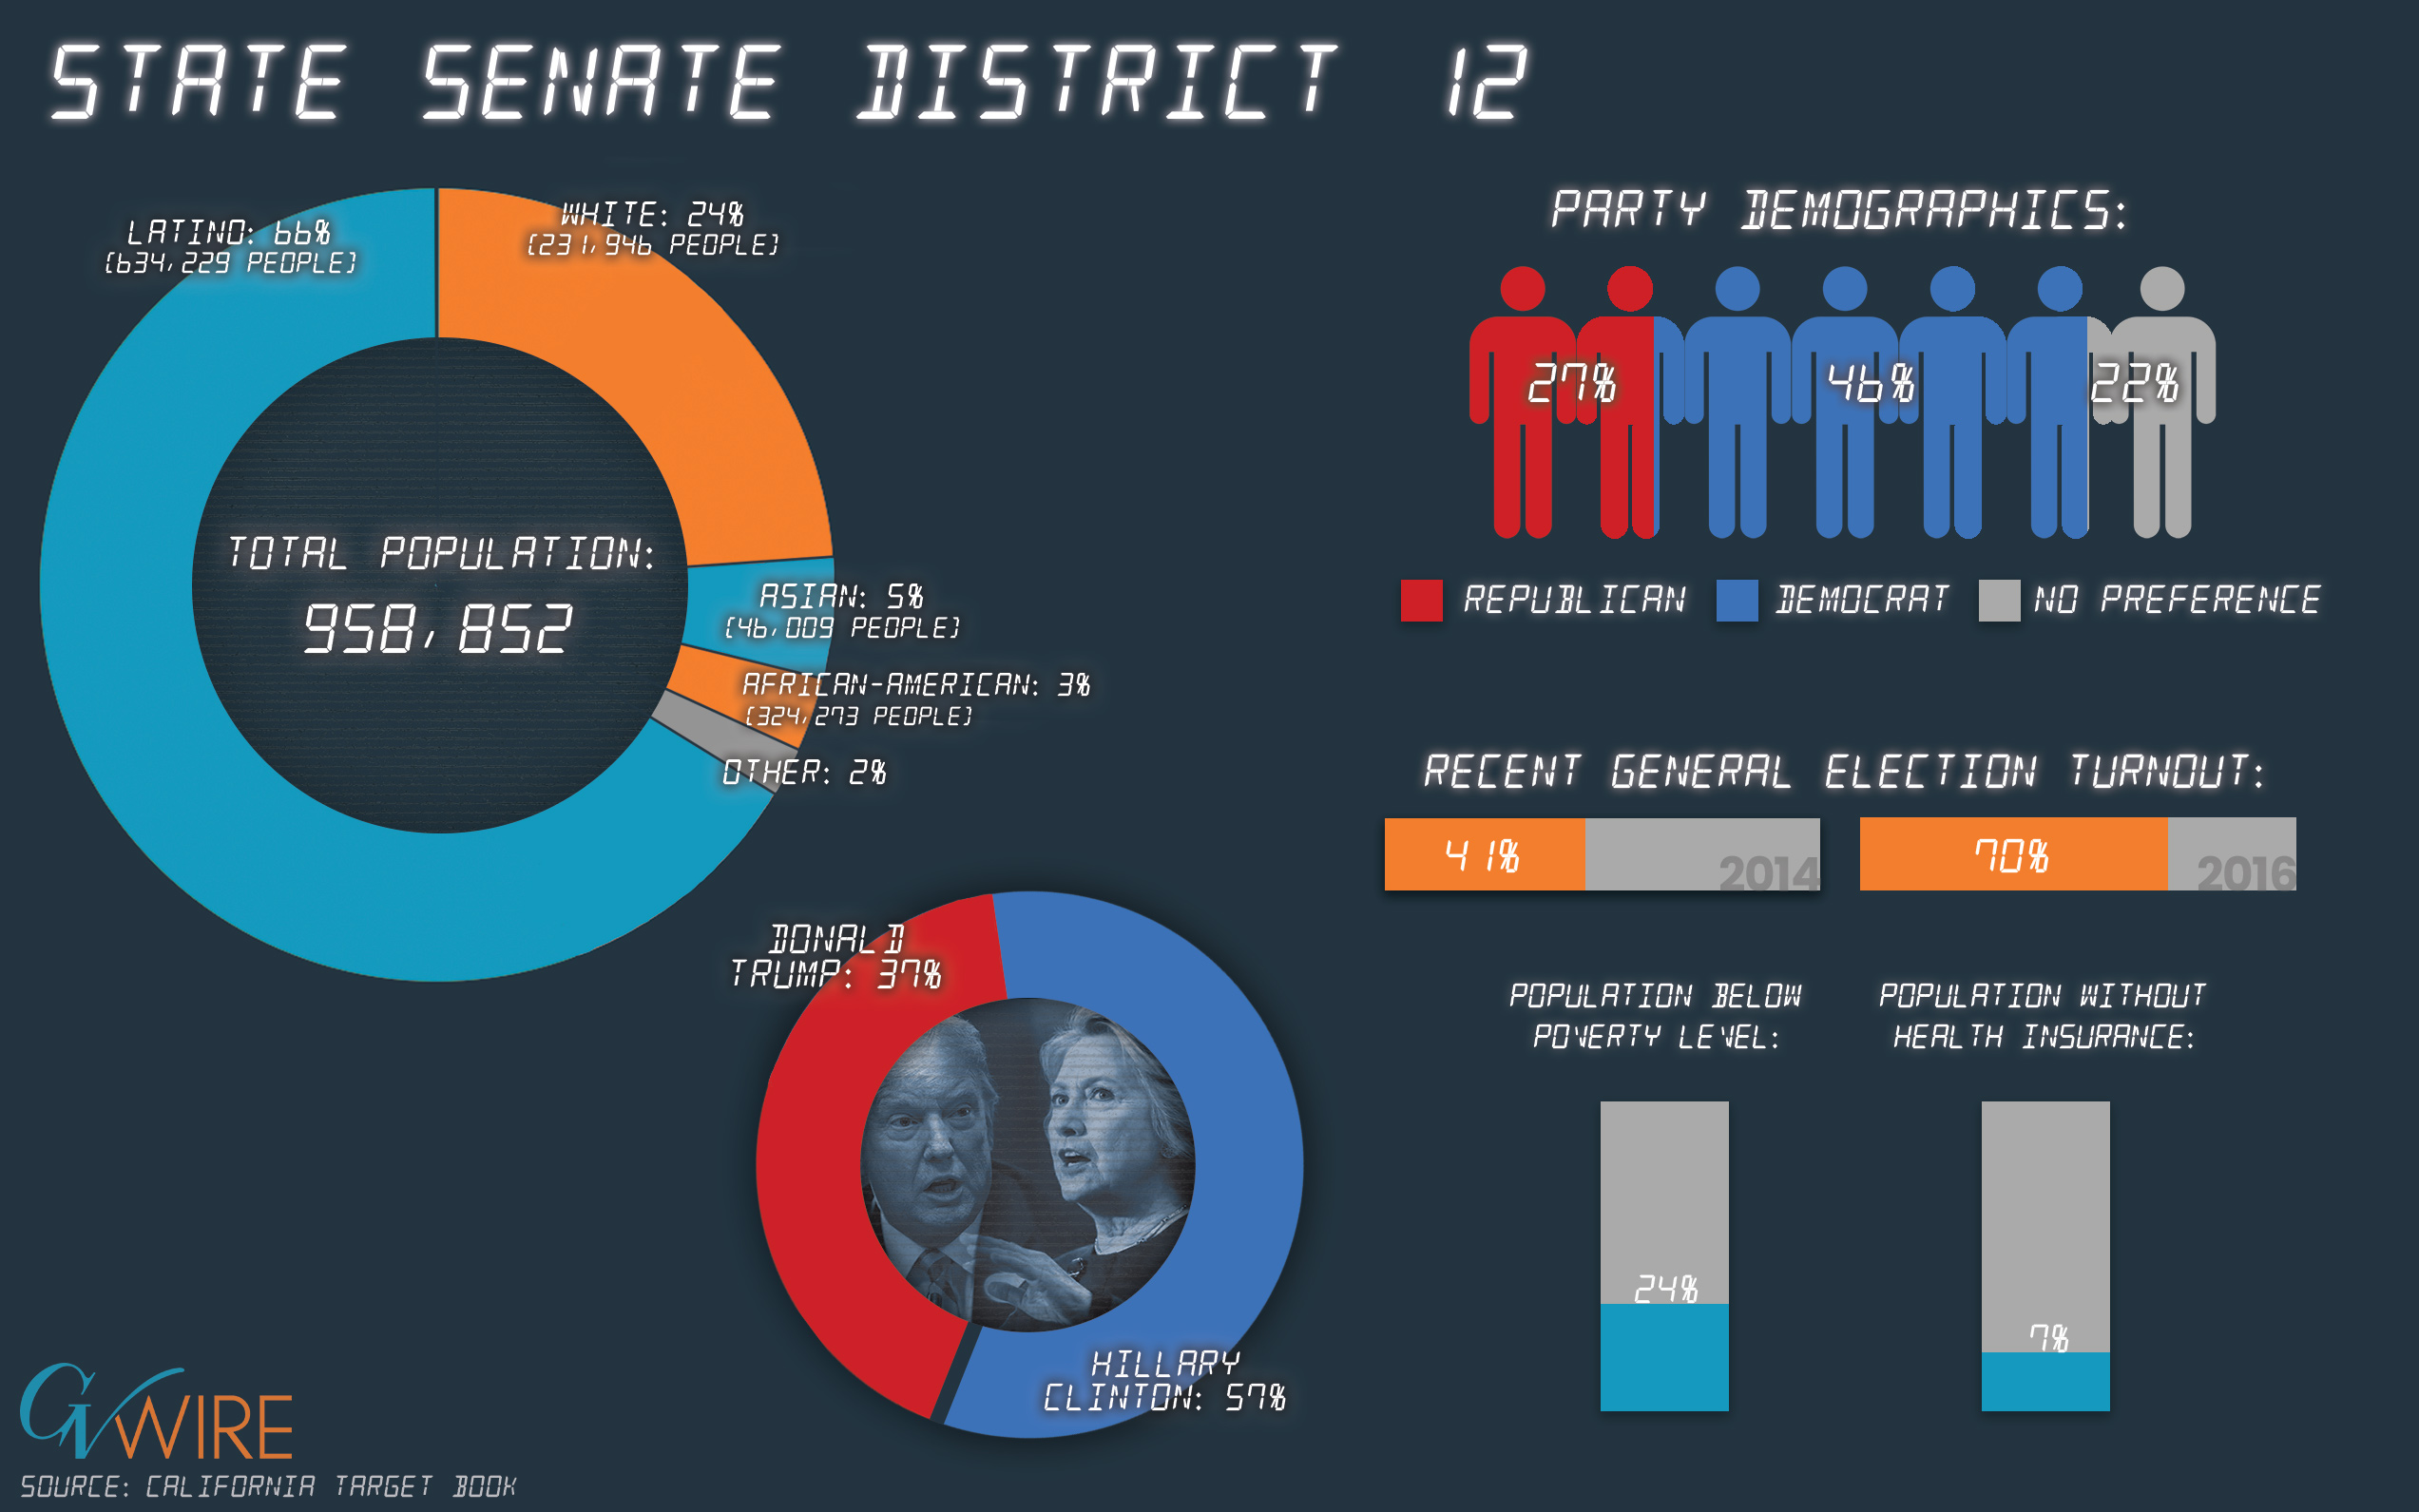 Infographic showing State Senate 12 population demographics